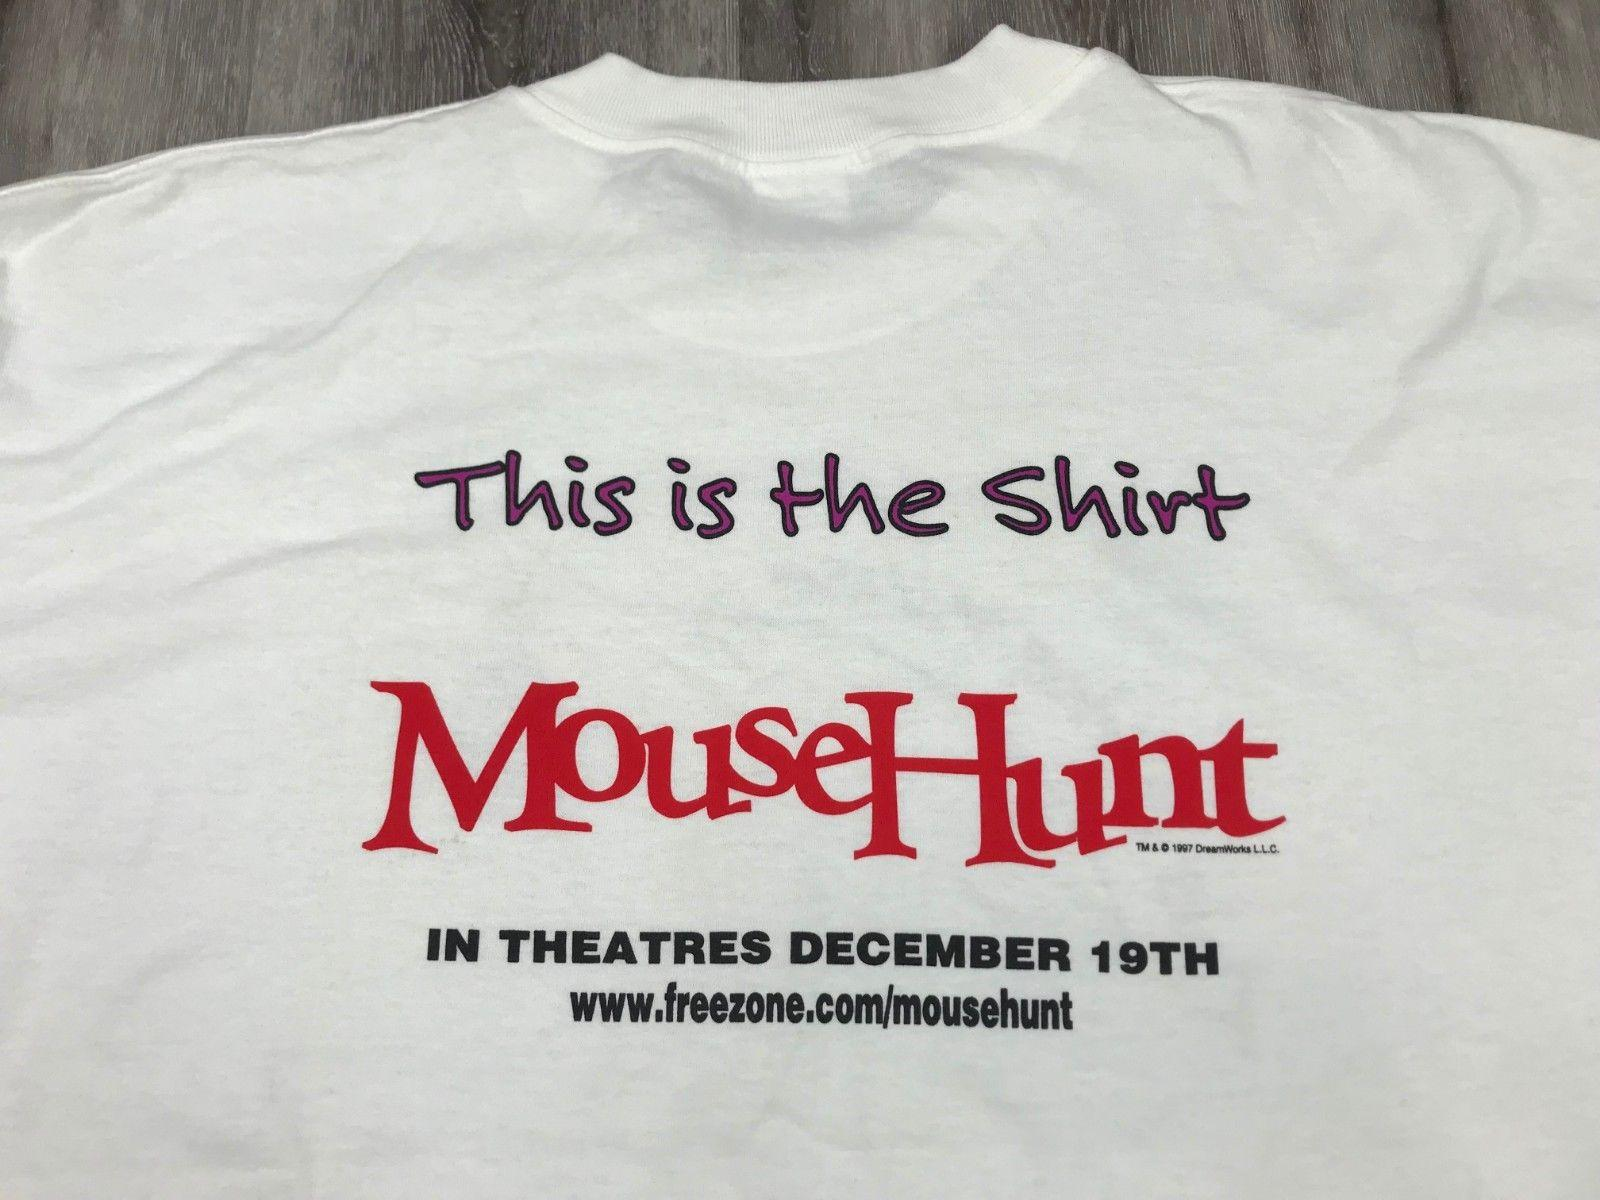 38f932b59 Vintage 1997 MOUSEHUNT Dreamworks Comedy Funny Movie Promo Cast Crew T Shirt  XL Trump Sweat Sporter T Shirt Novelty Tee Shirts Awesome Shirt Designs  From ...